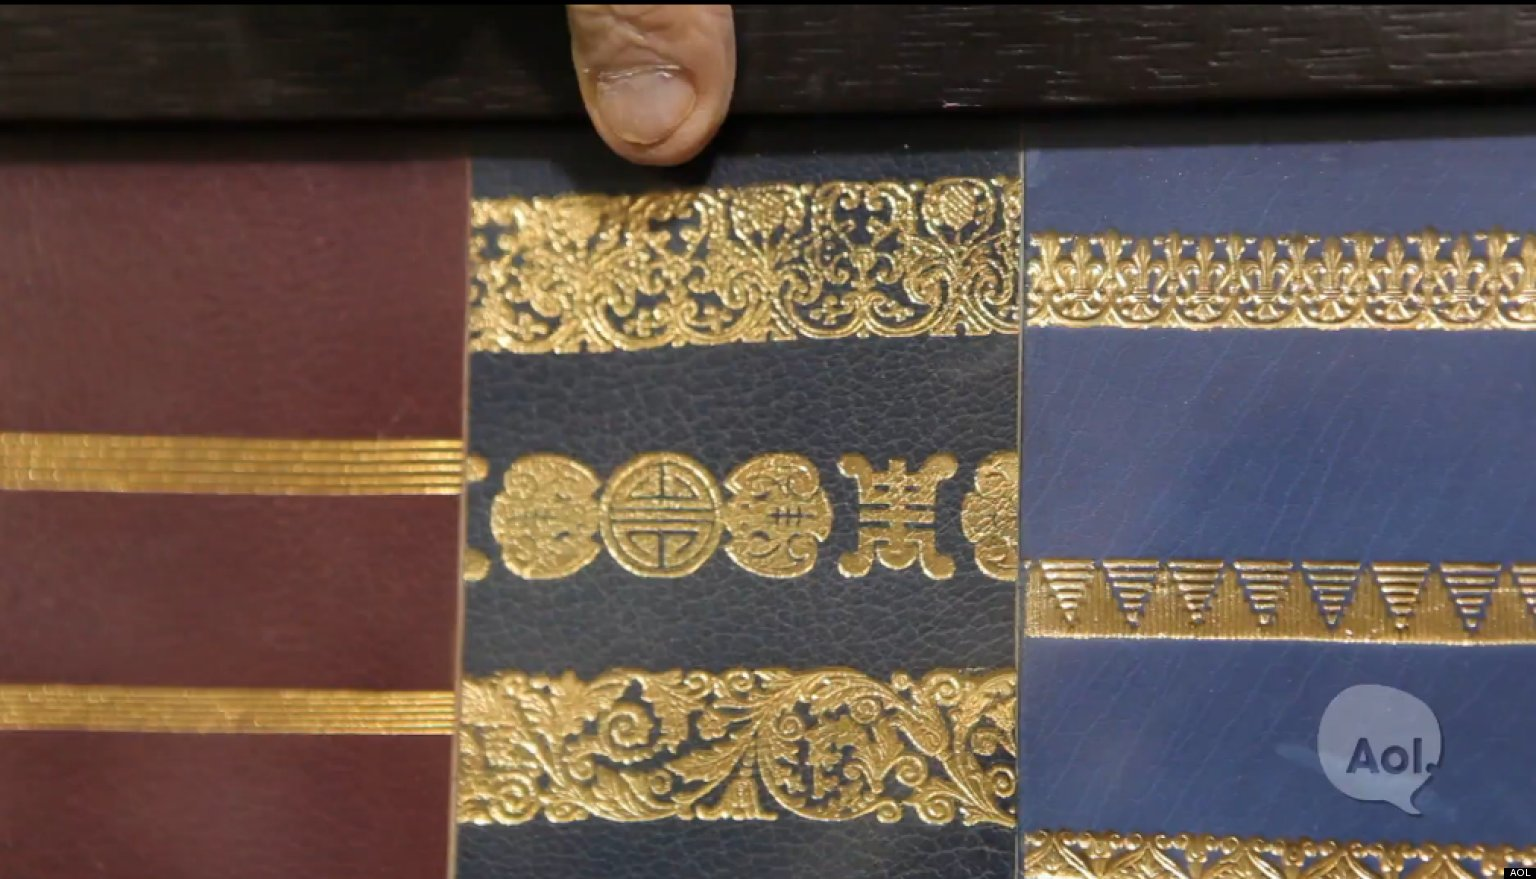 WATCH: Art Of The Bookbinder